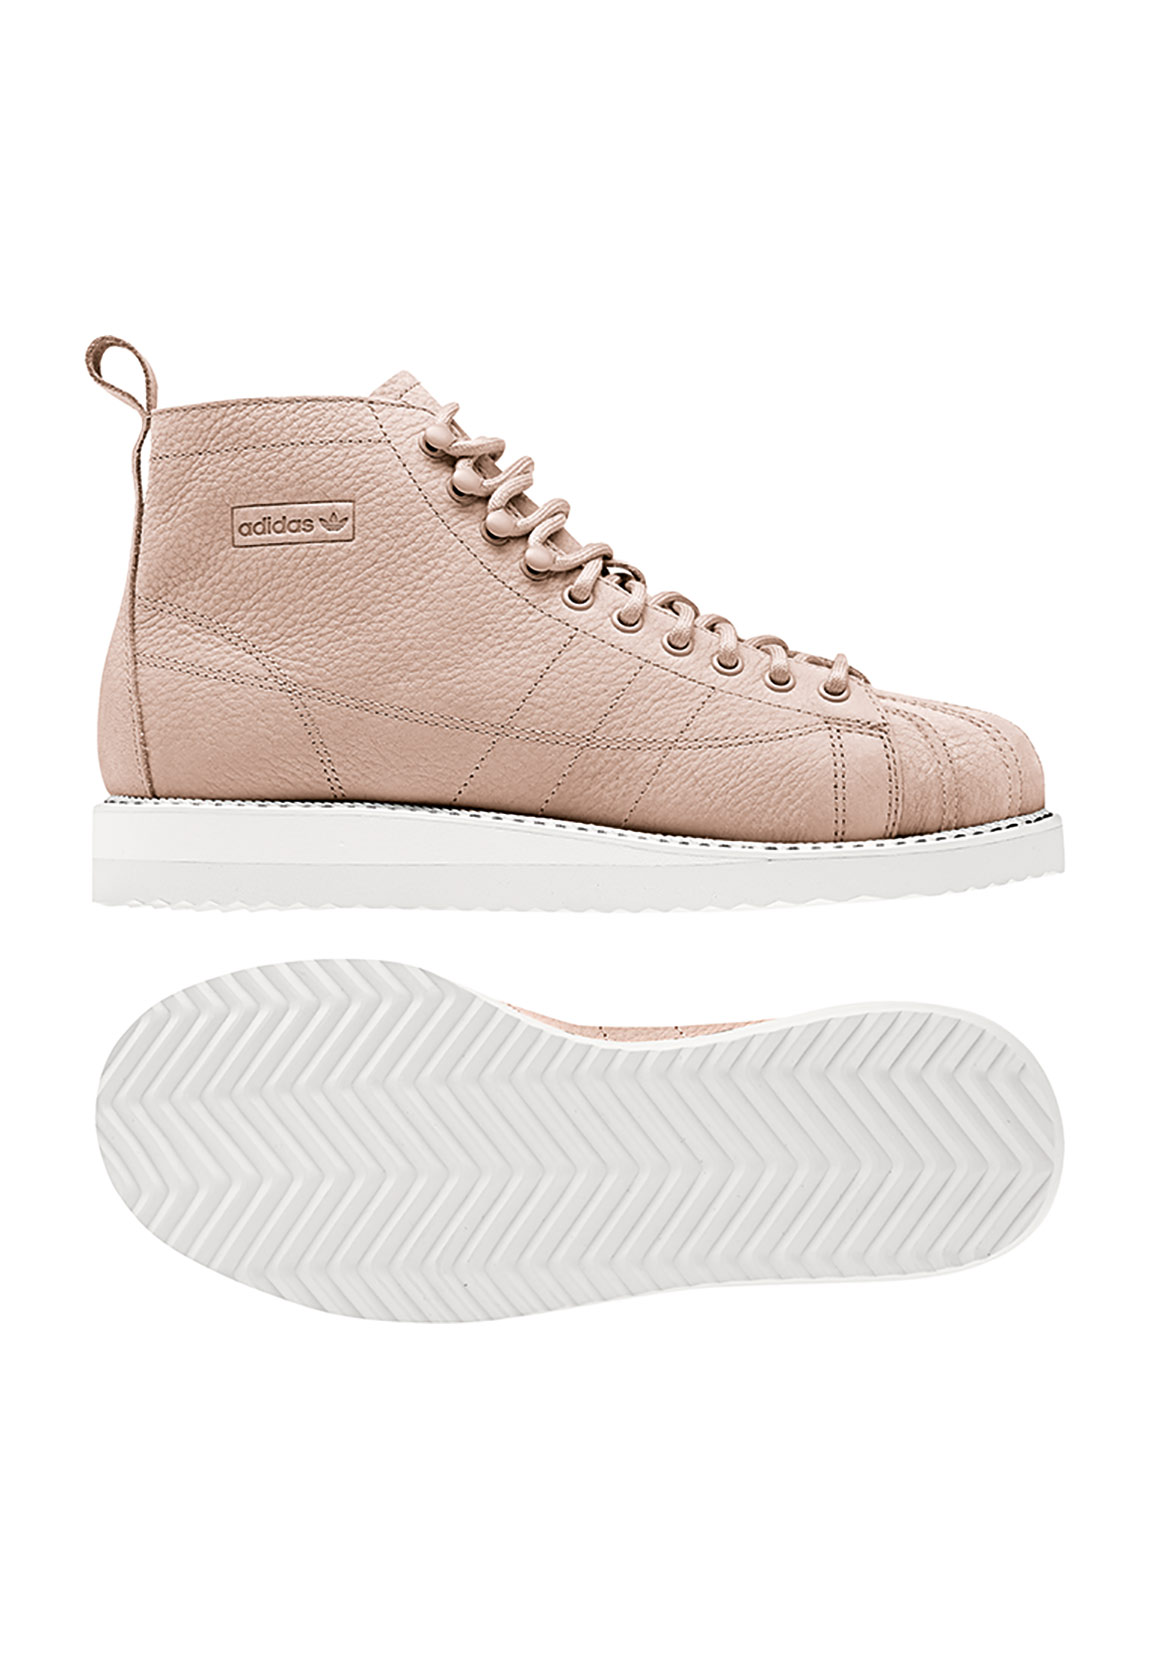 Adidas Originals Boots SUPERSTAR BOOT W B37816 Rosa